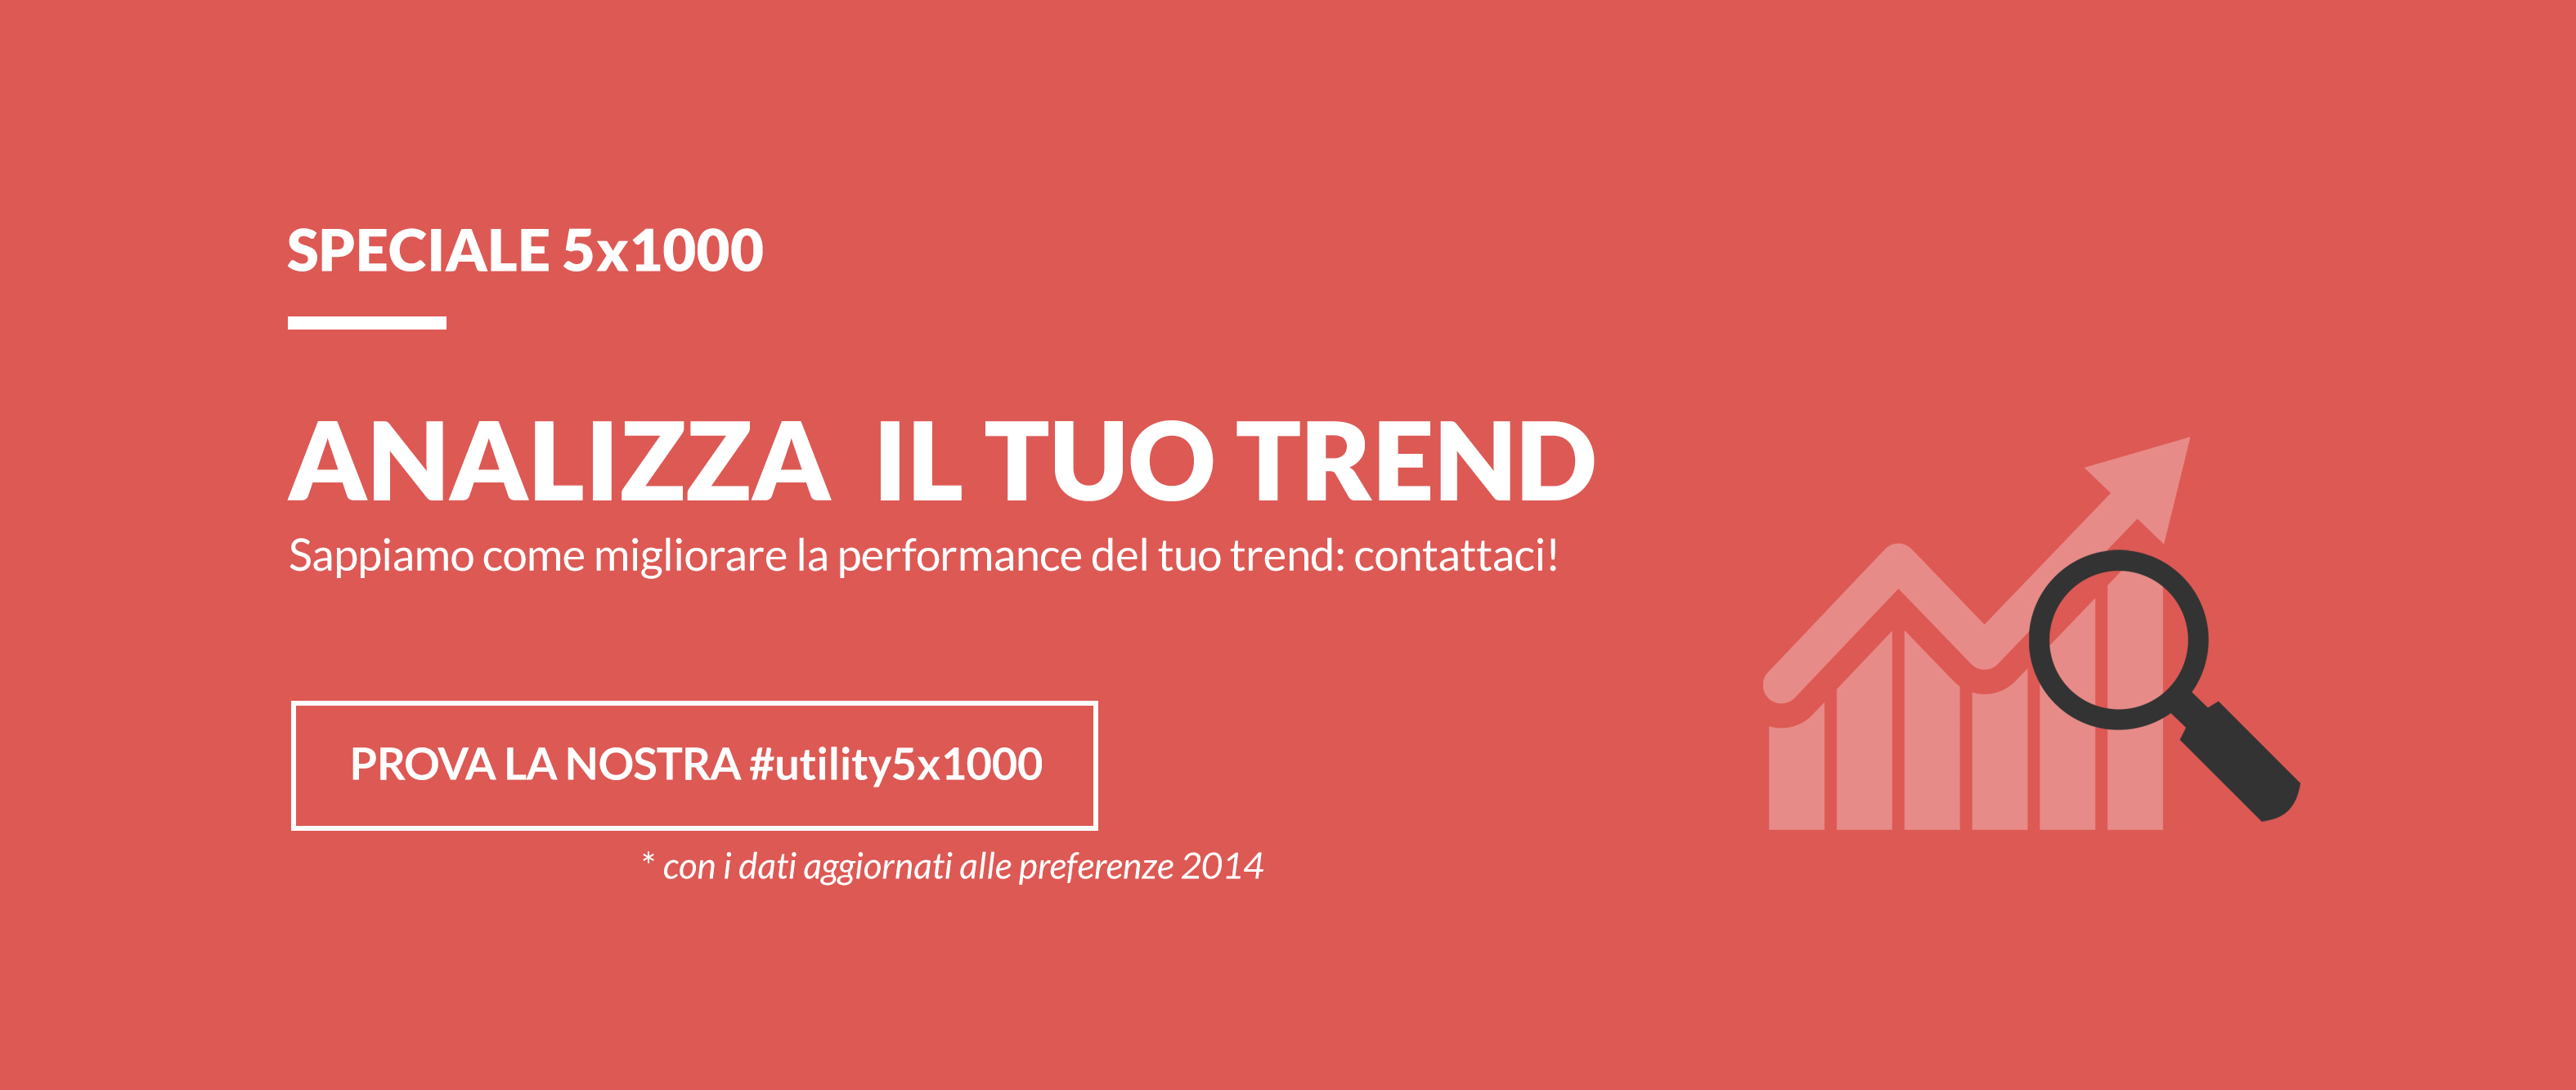 utility5x1000-npsolutions-calcola-trend-preferenze